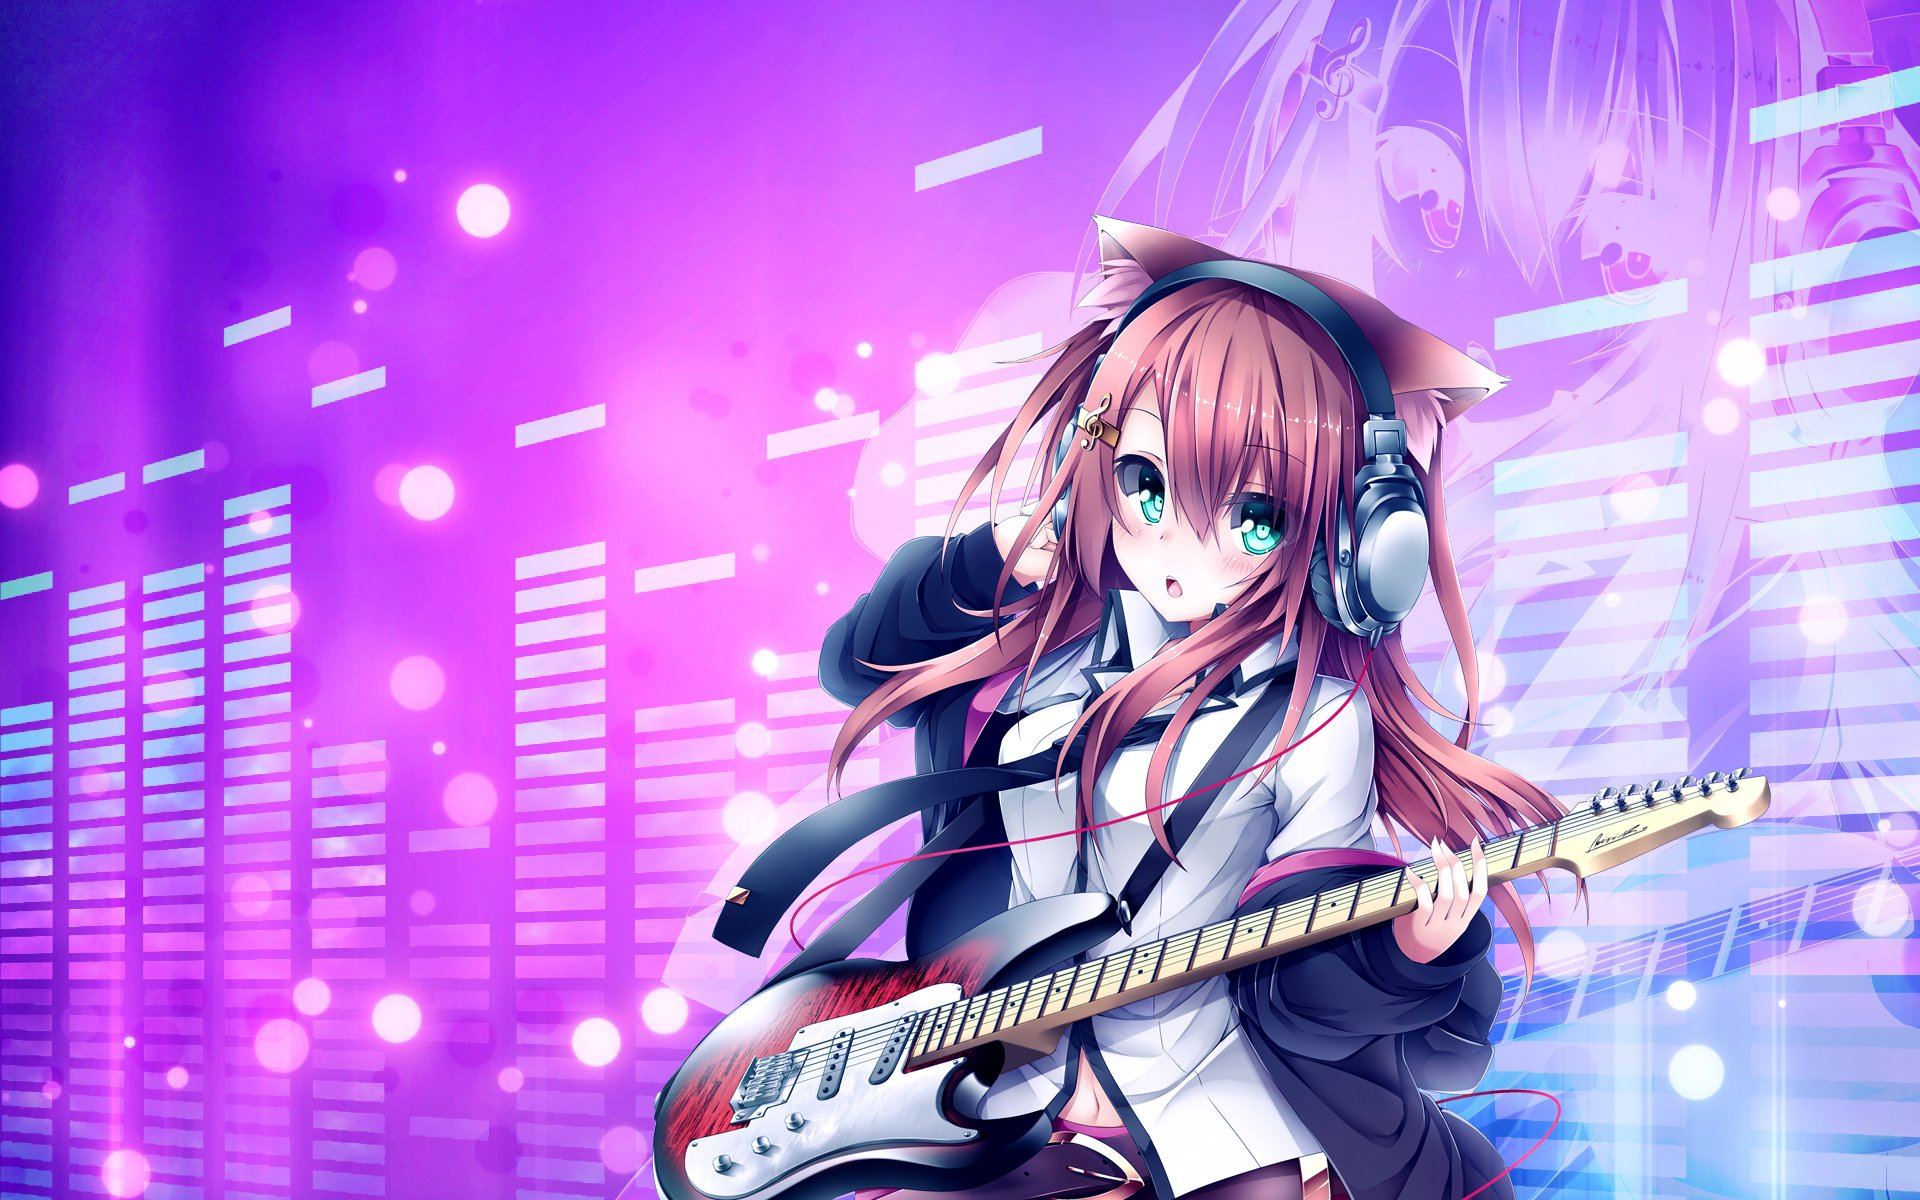 Anime girl wallpaper wallpapersafari - Anime girl full hd ...